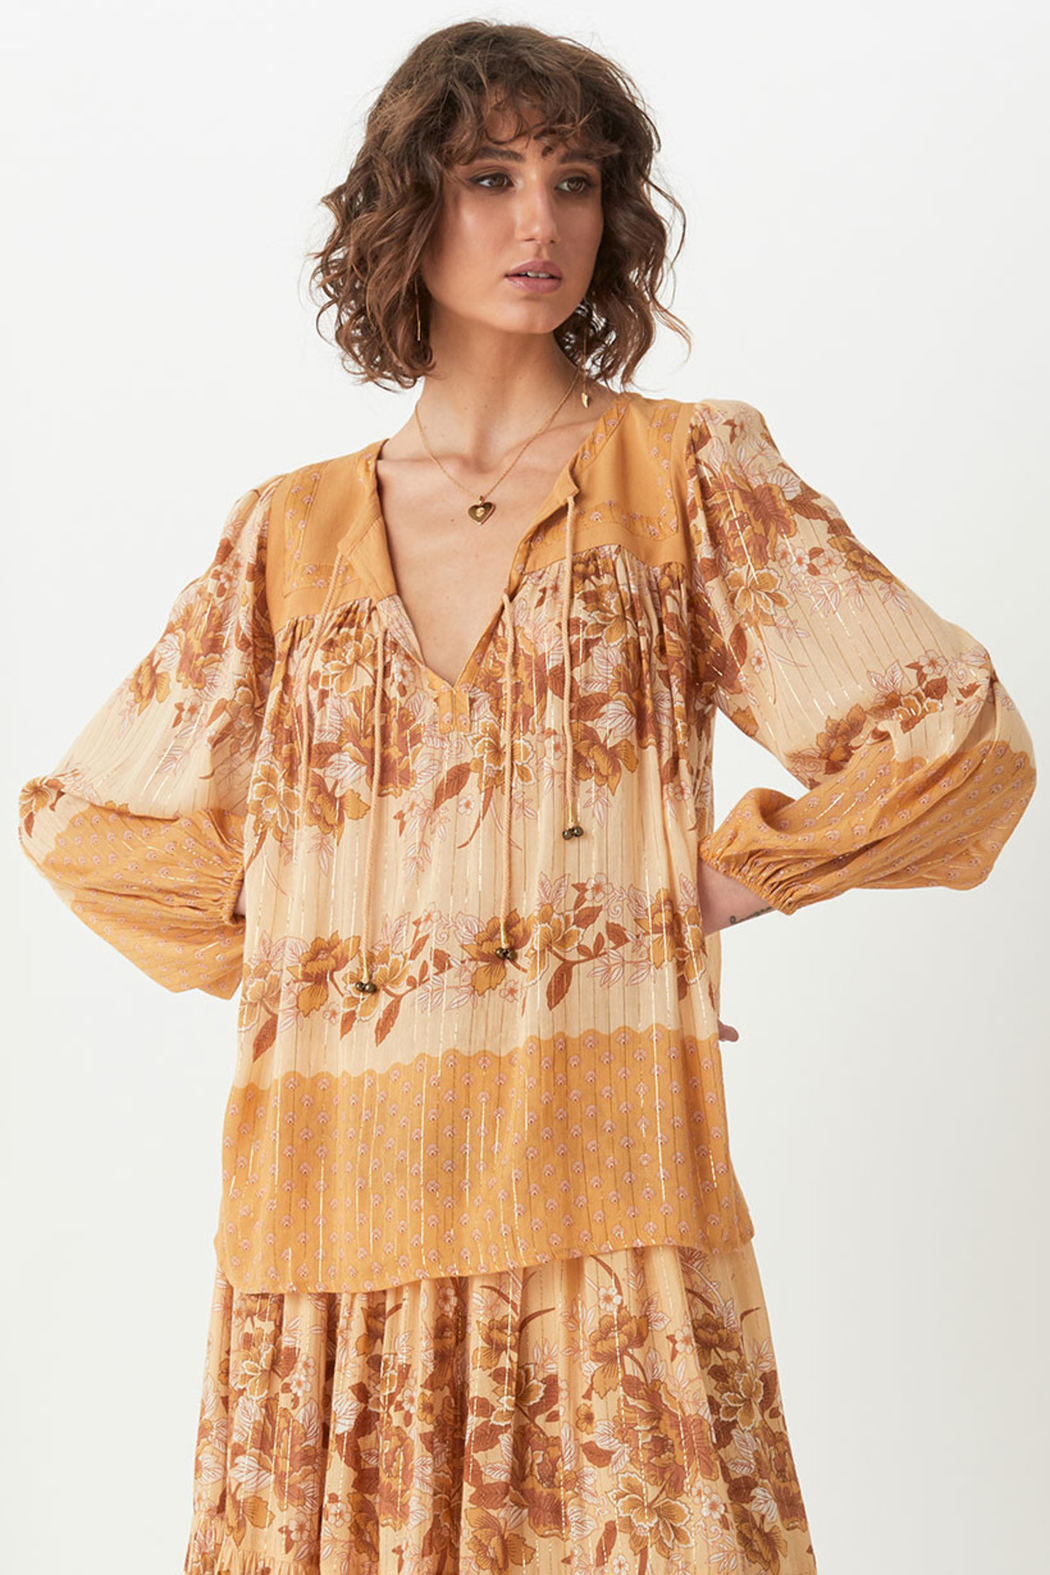 Spell & the Gypsy Collective Coco Lei Blouse in Caramel - Main Image